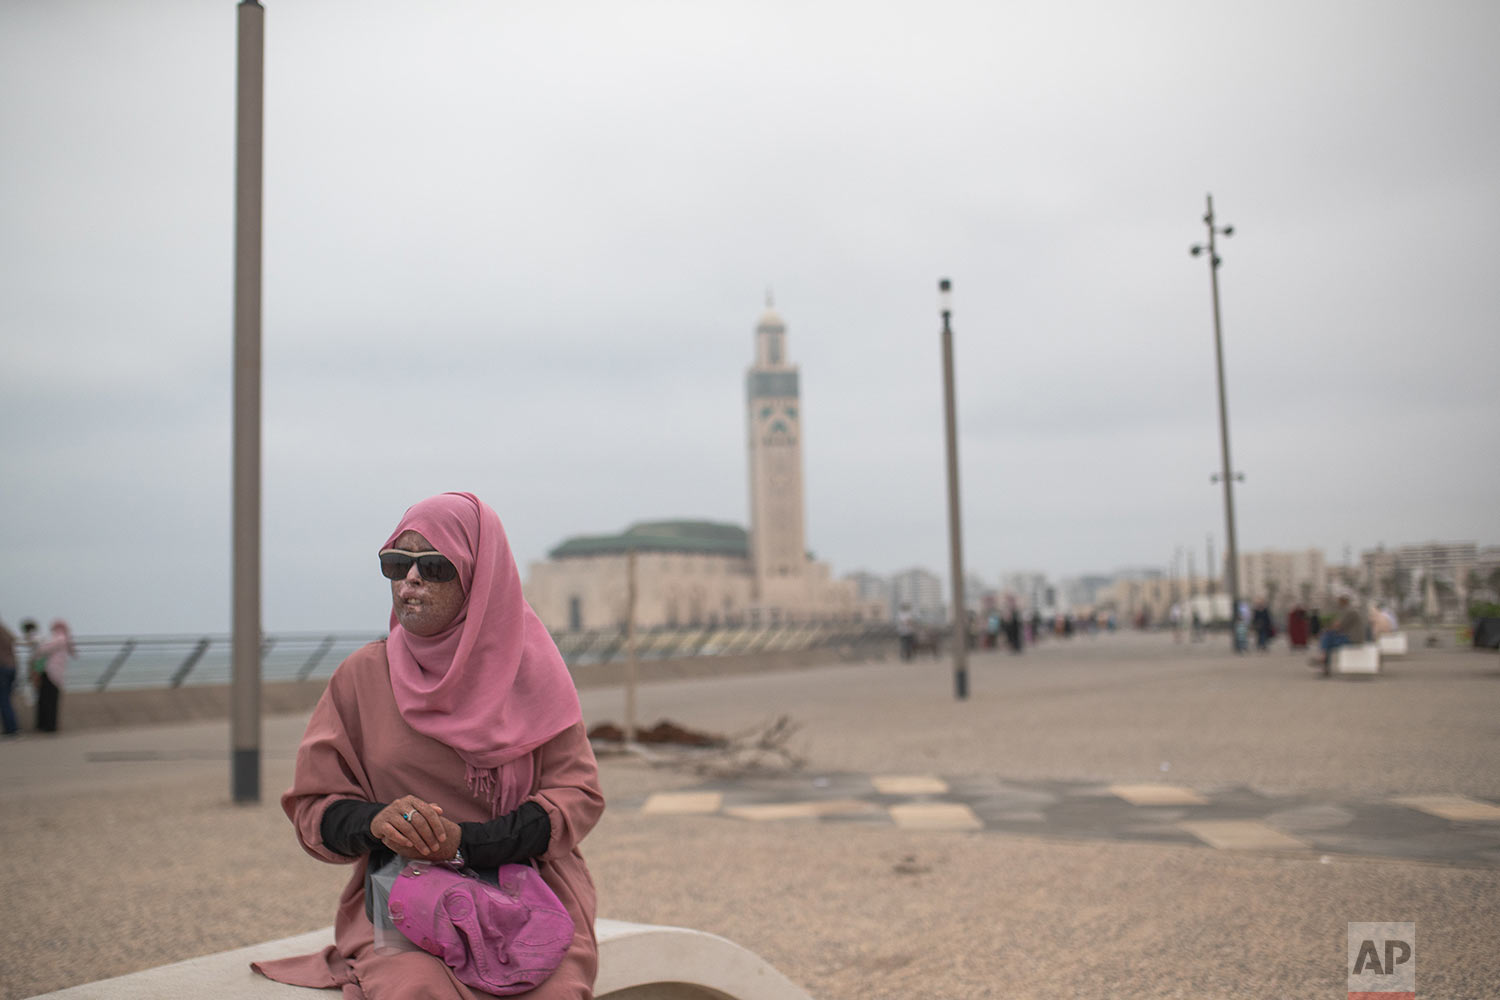 Fatimazehra Belloucy, 25, a woman affected by a rare disorder called xeroderma pigmentosum, or XP, poses for a portrait by the corniche in Casablanca, Morocco, July 24, 2019. (AP Photo/Mosa'ab Elshamy)